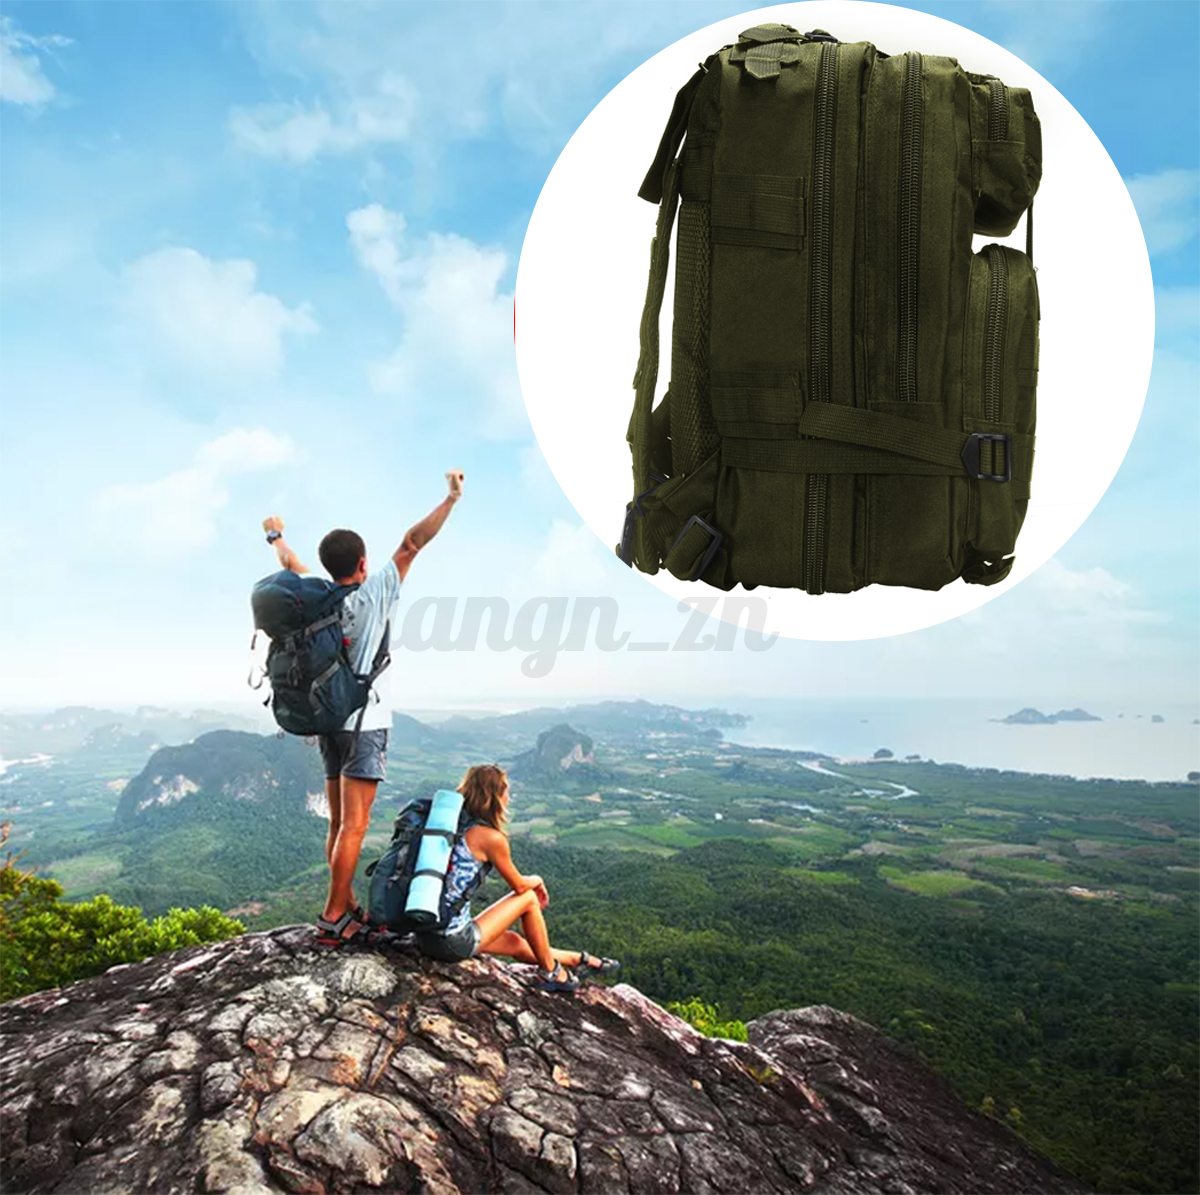 Military RucksacksL Waterproof Tactical Outdoor Sports Camping Trekking 30L40L